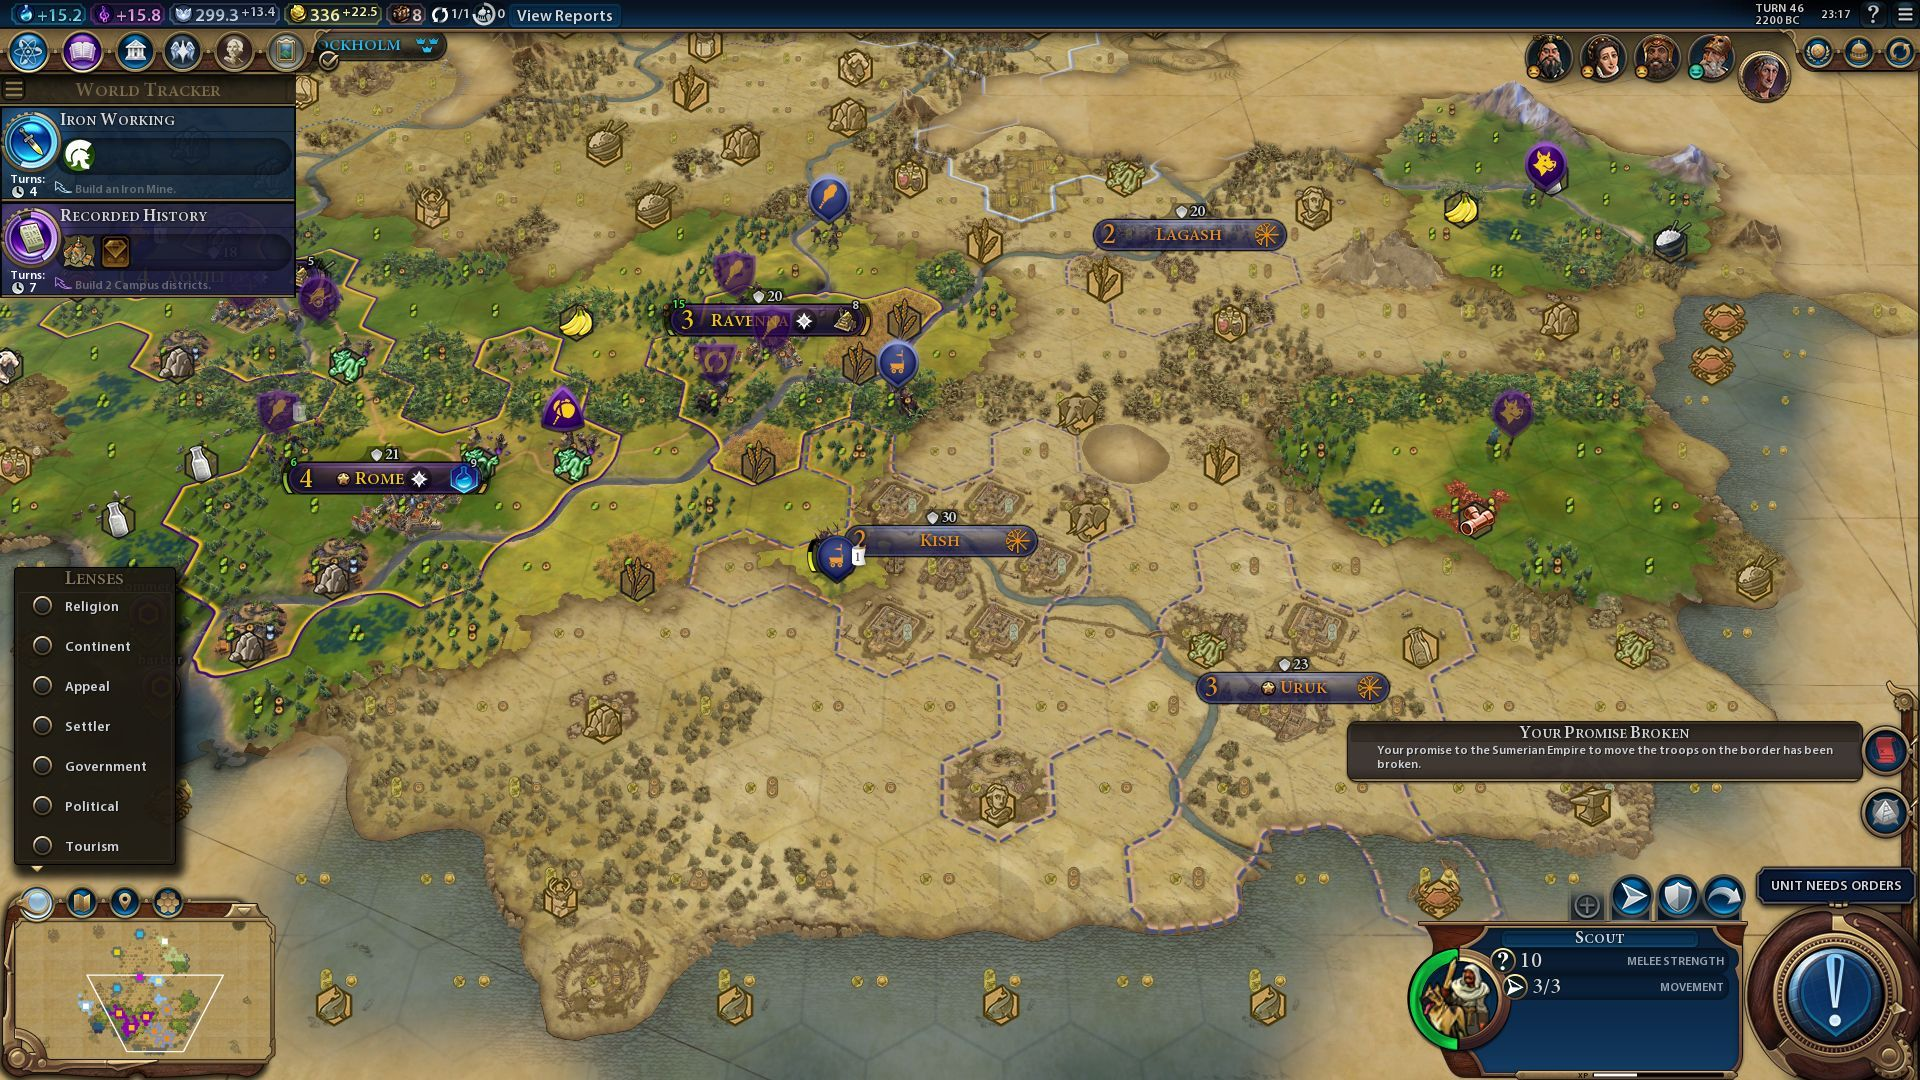 Well looks like the updated promise to move away troops from the border is broken. #CivilizationBeyondEarth #gaming #Civilization #games #world #steam #SidMeier #RTS